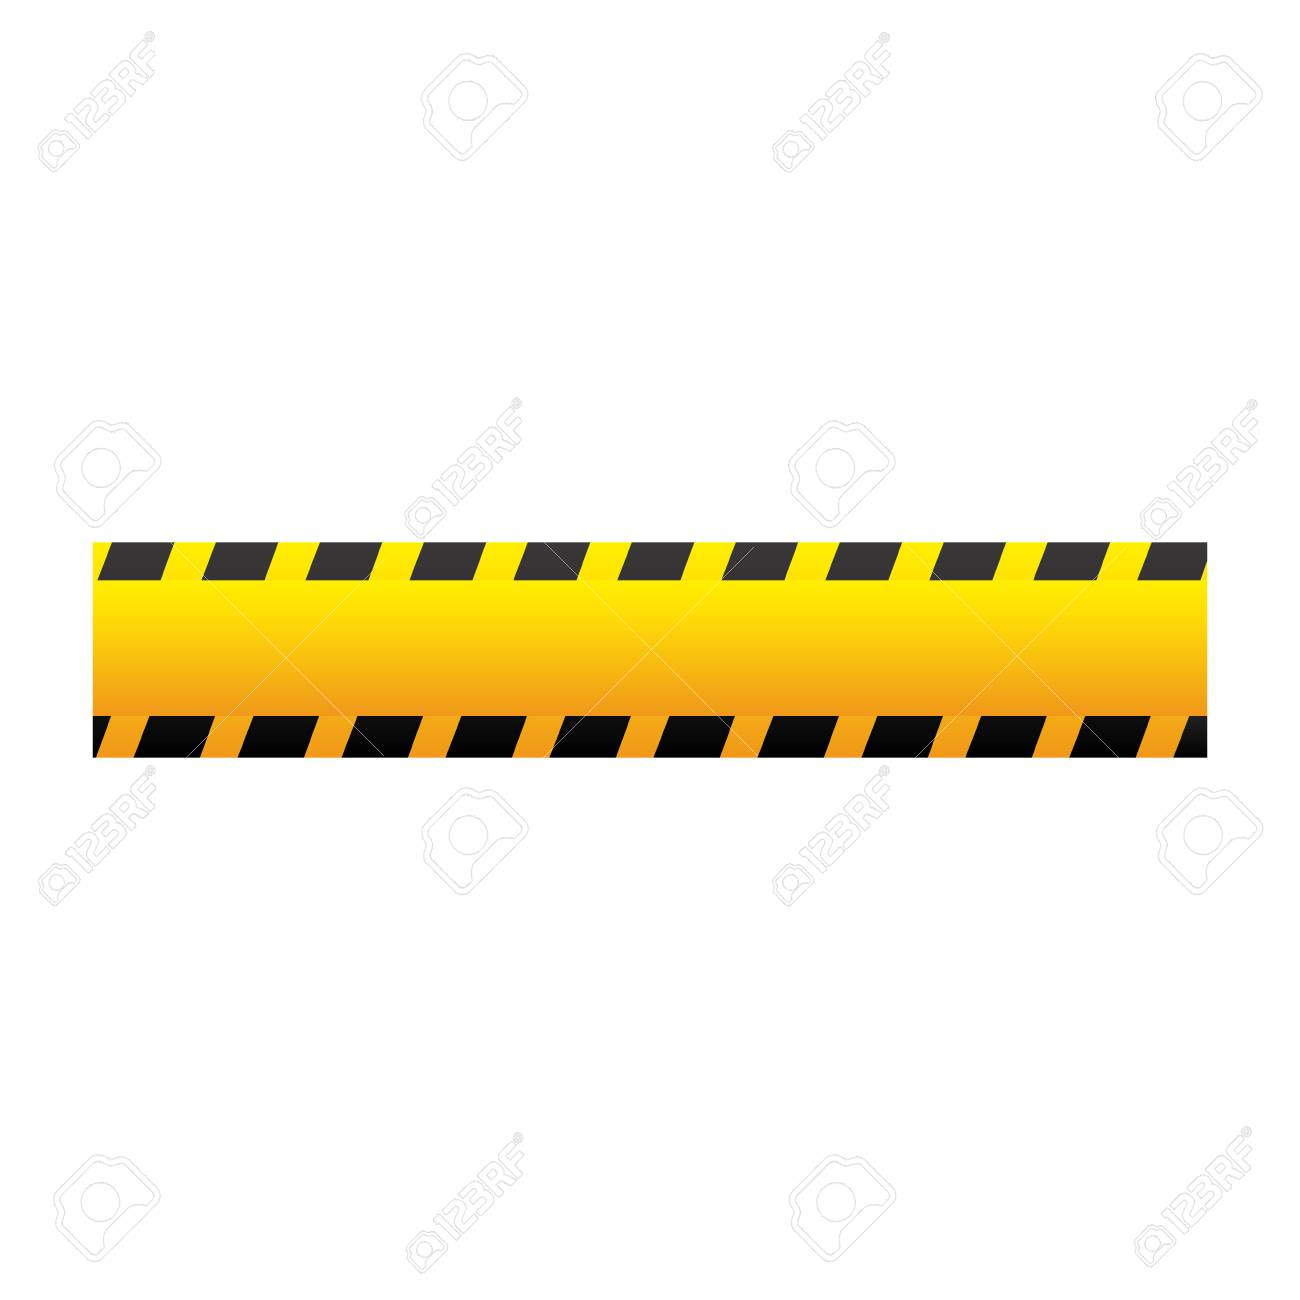 yellow caution tape icon vector illustraction design image royalty rh 123rf com caution tape vector free